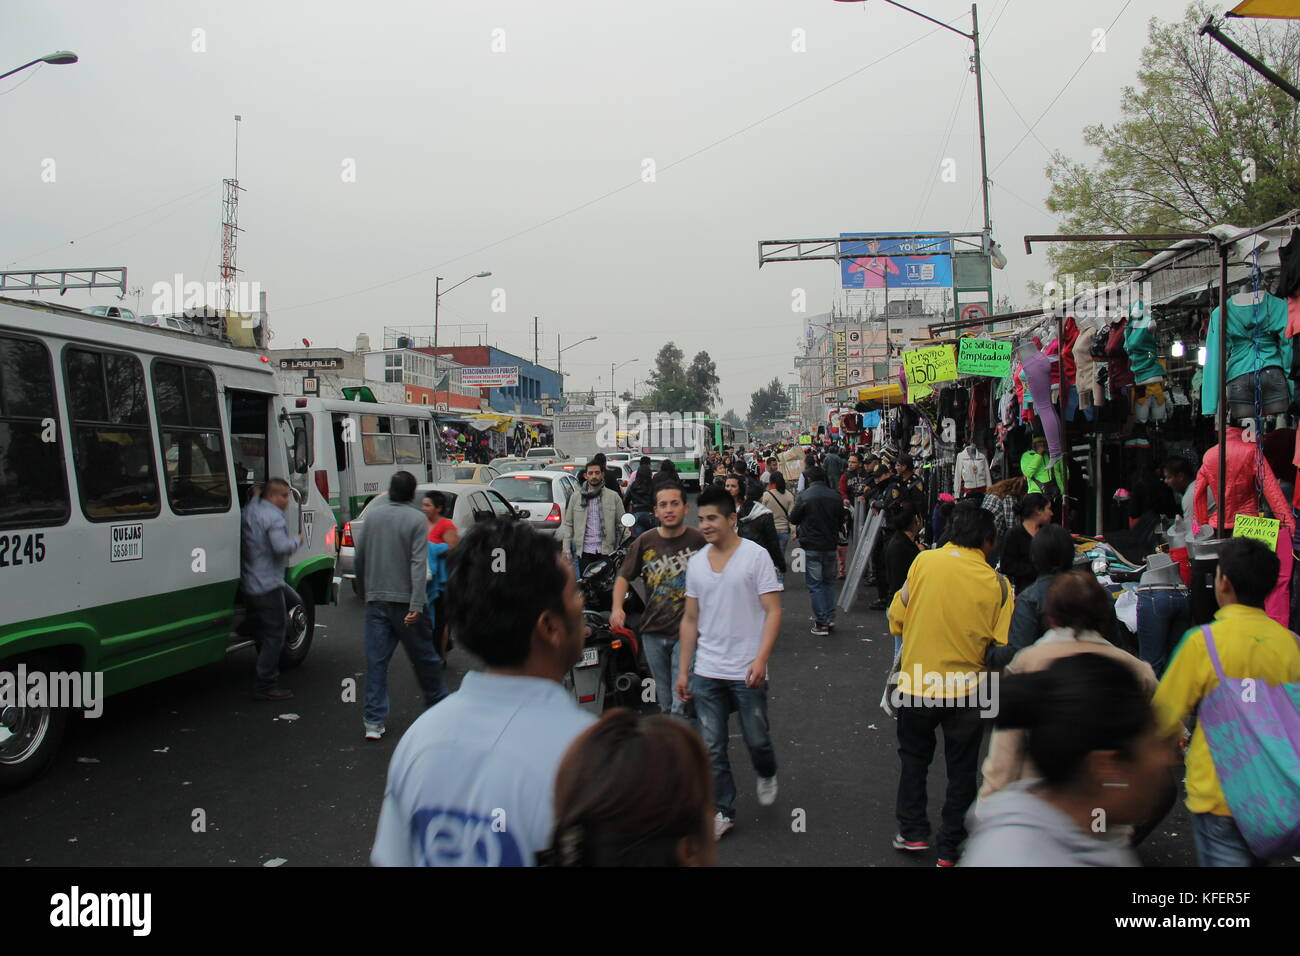 Tepito market in Mexico city. - Stock Image